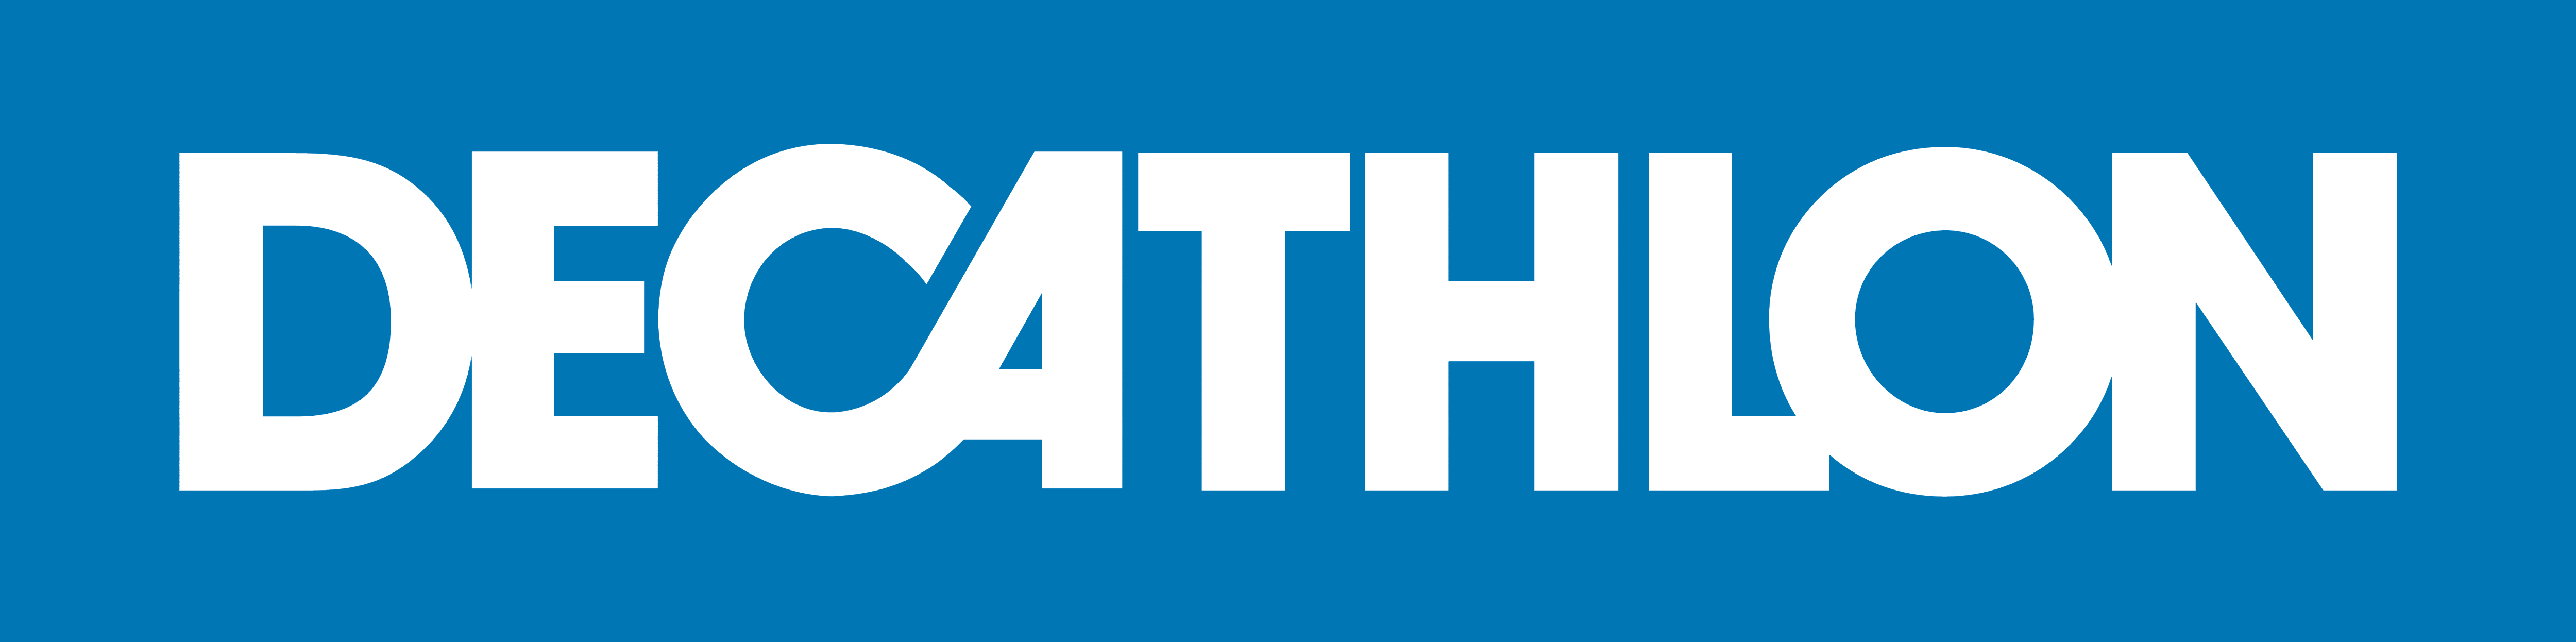 8838 Decathlon Logo Download on Food Post